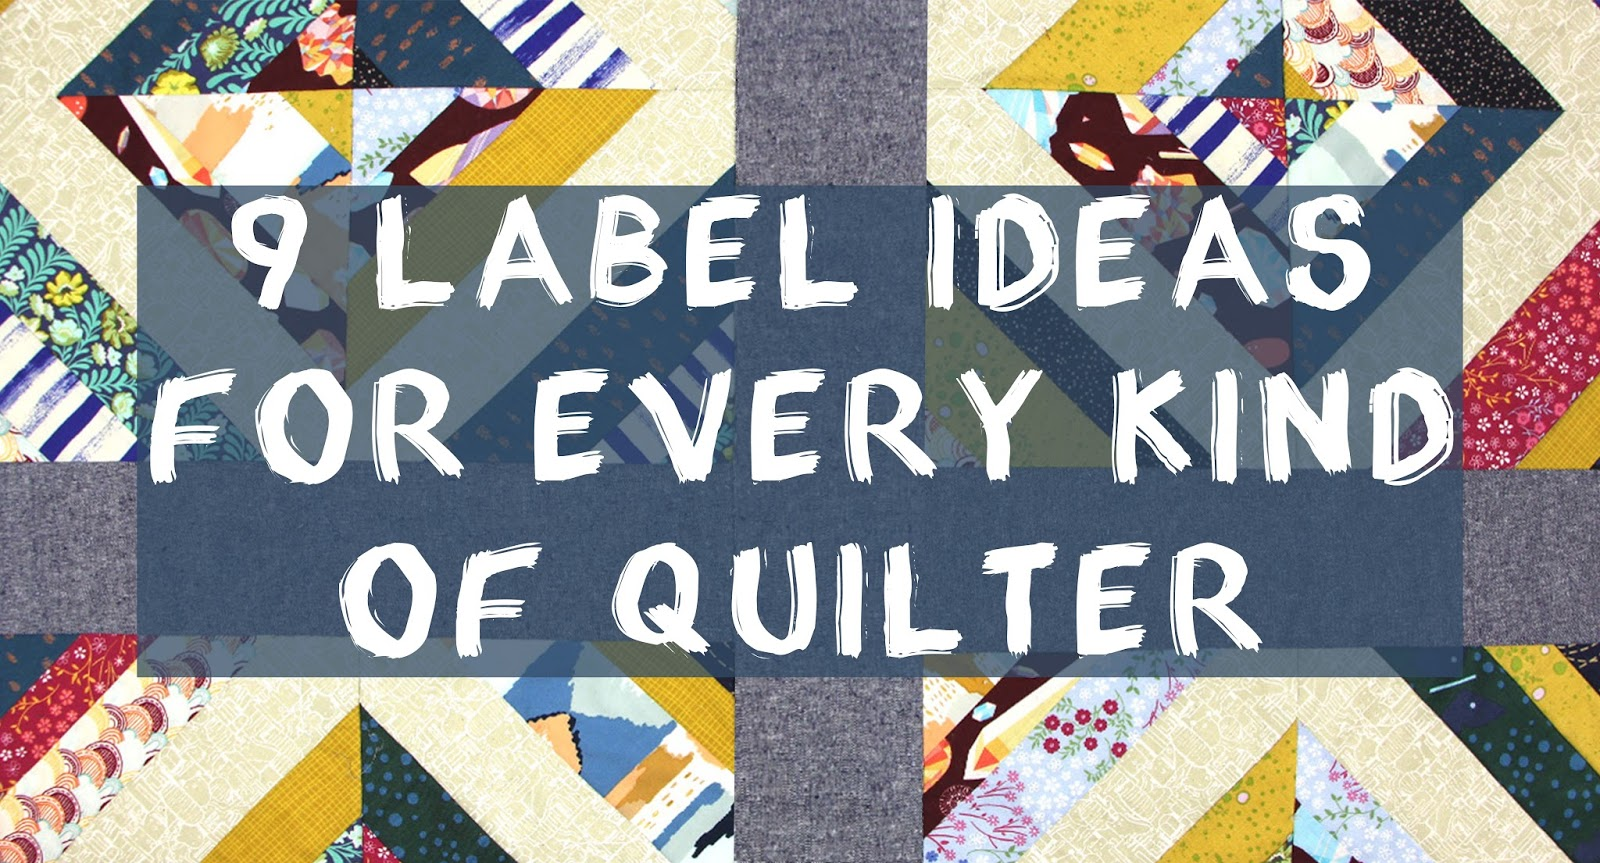 Canadian Quilting CQA/ACC: 9 Label Ideas for Every Kind of Quilter : canadian quilting stores - Adamdwight.com